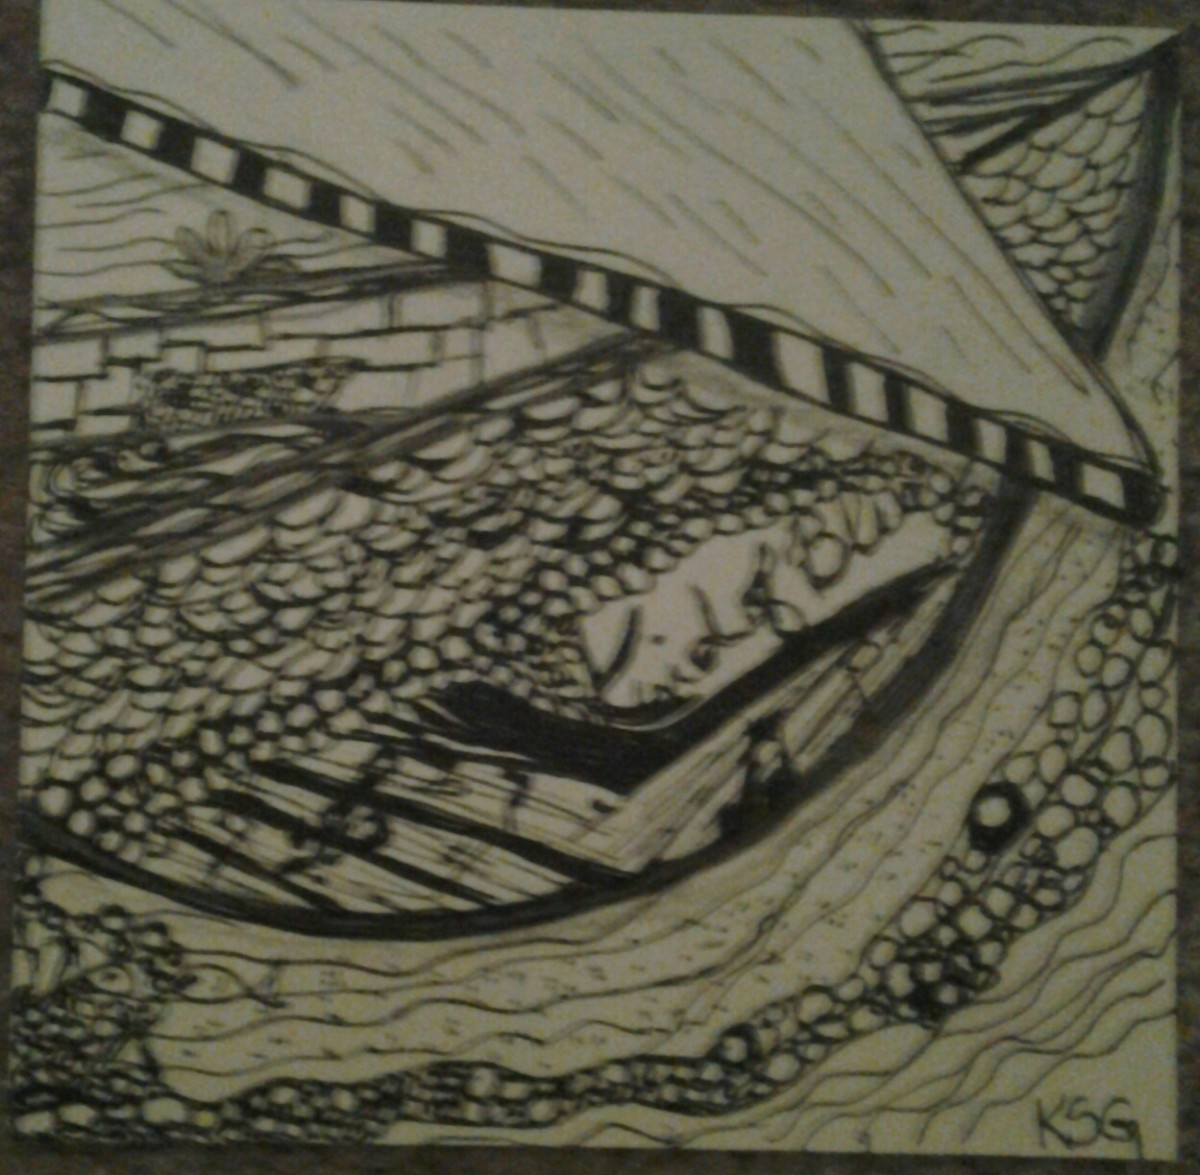 A boat I drew for a neighbor in the style of Zentangle